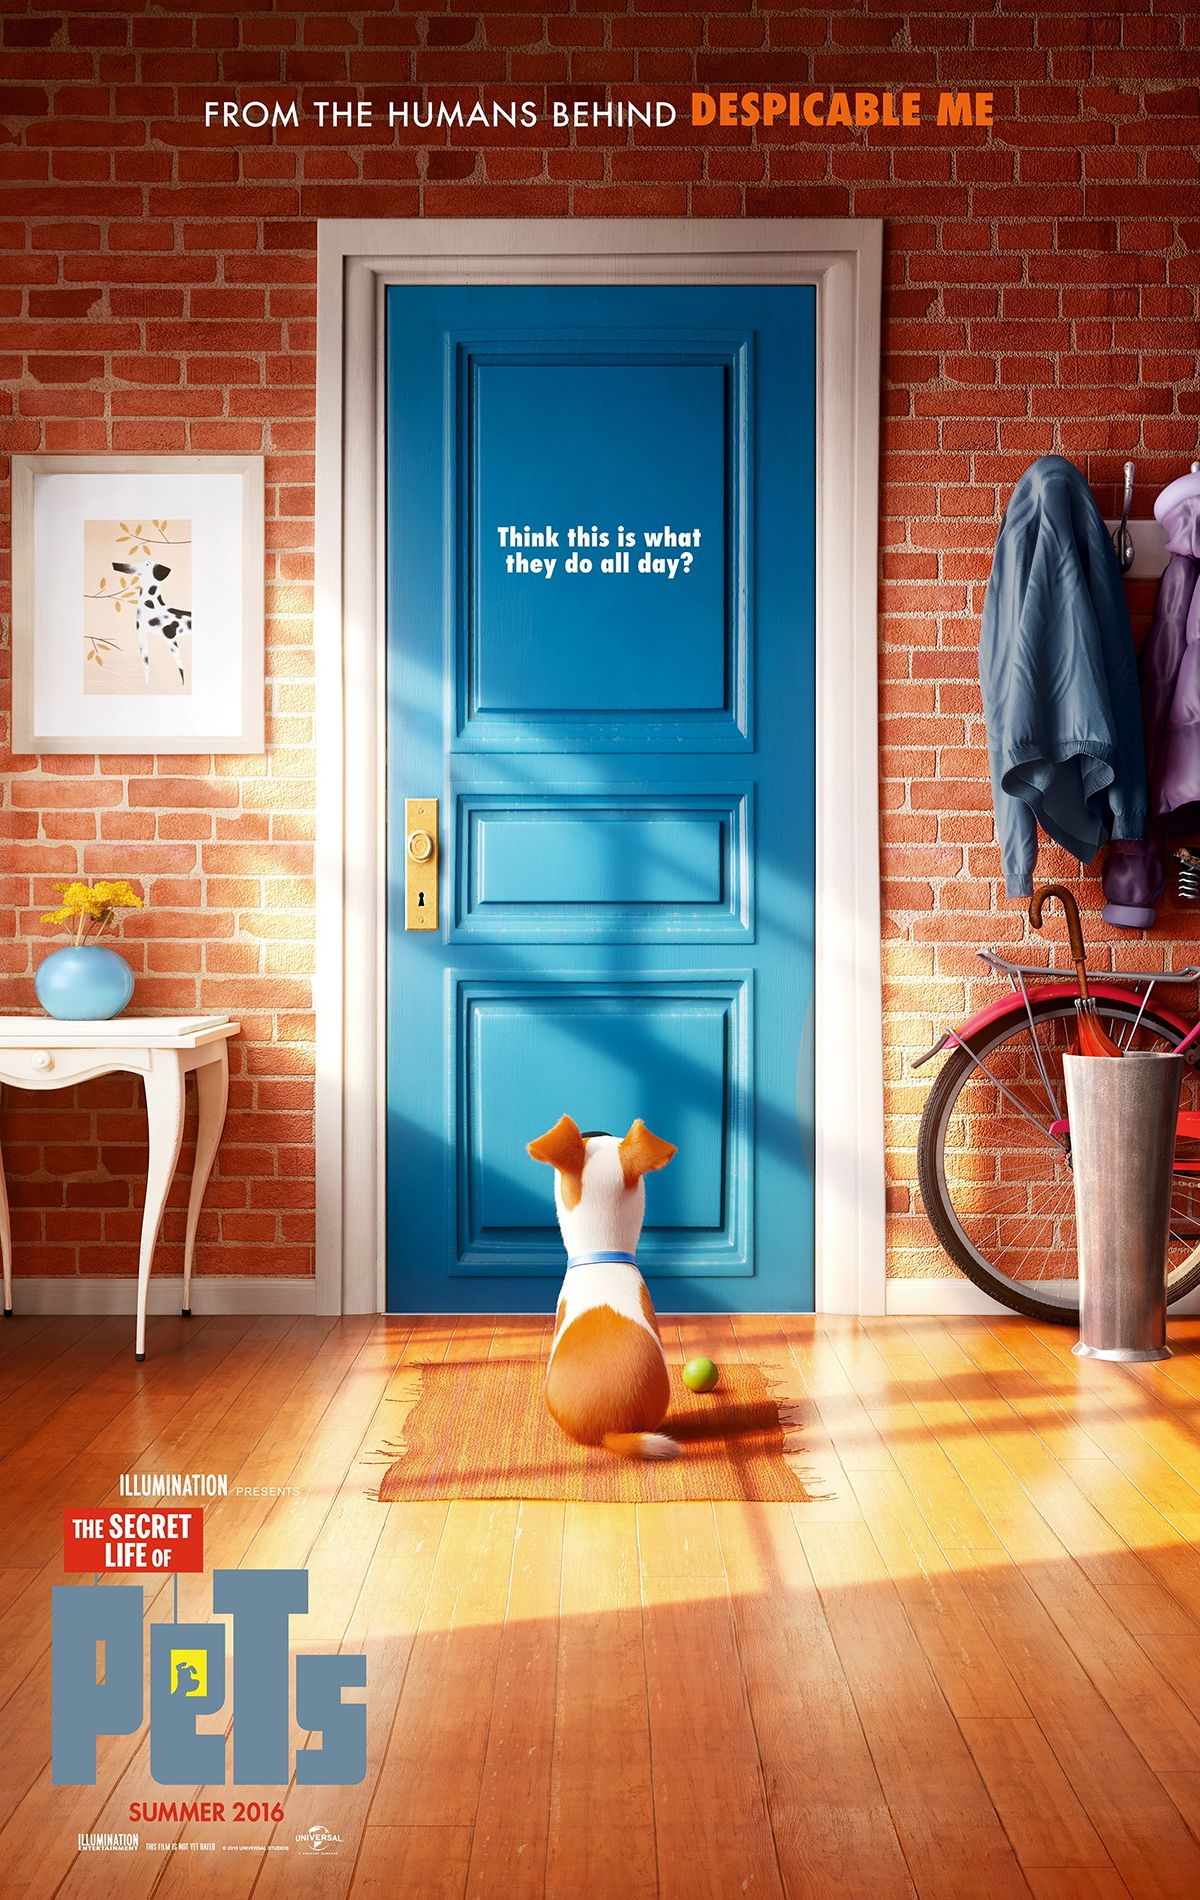 All Movie Posters And Prints For The Secret Life Of Pets Pets Movie Secret Life Of Pets Summer Movie